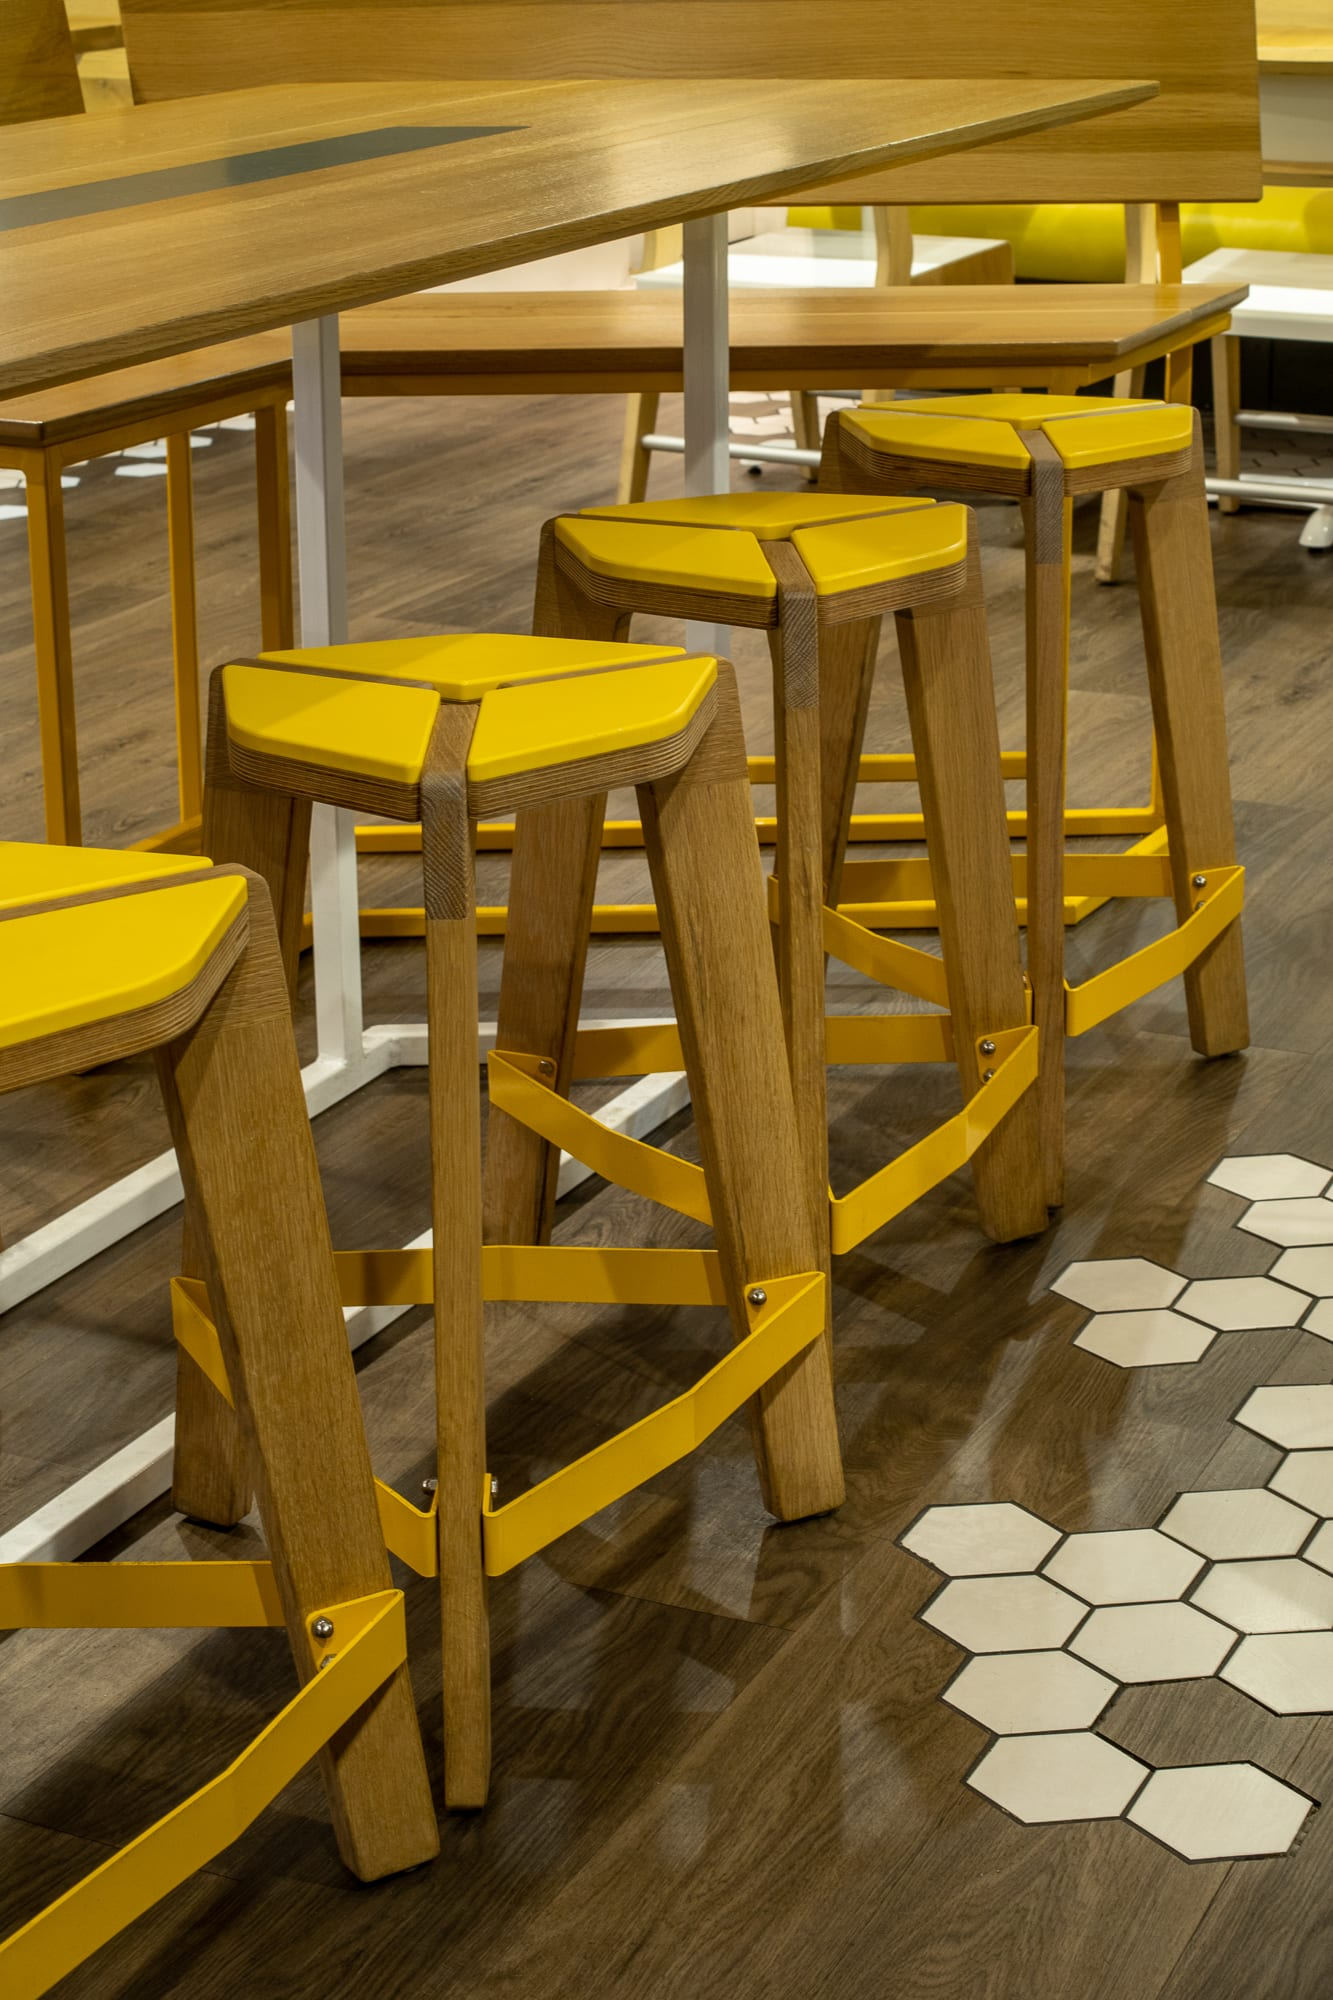 Chairs by Housefish seen at Birdcall - Evans, Denver - Birdcall Hex Stools, Tables, Architectural Features